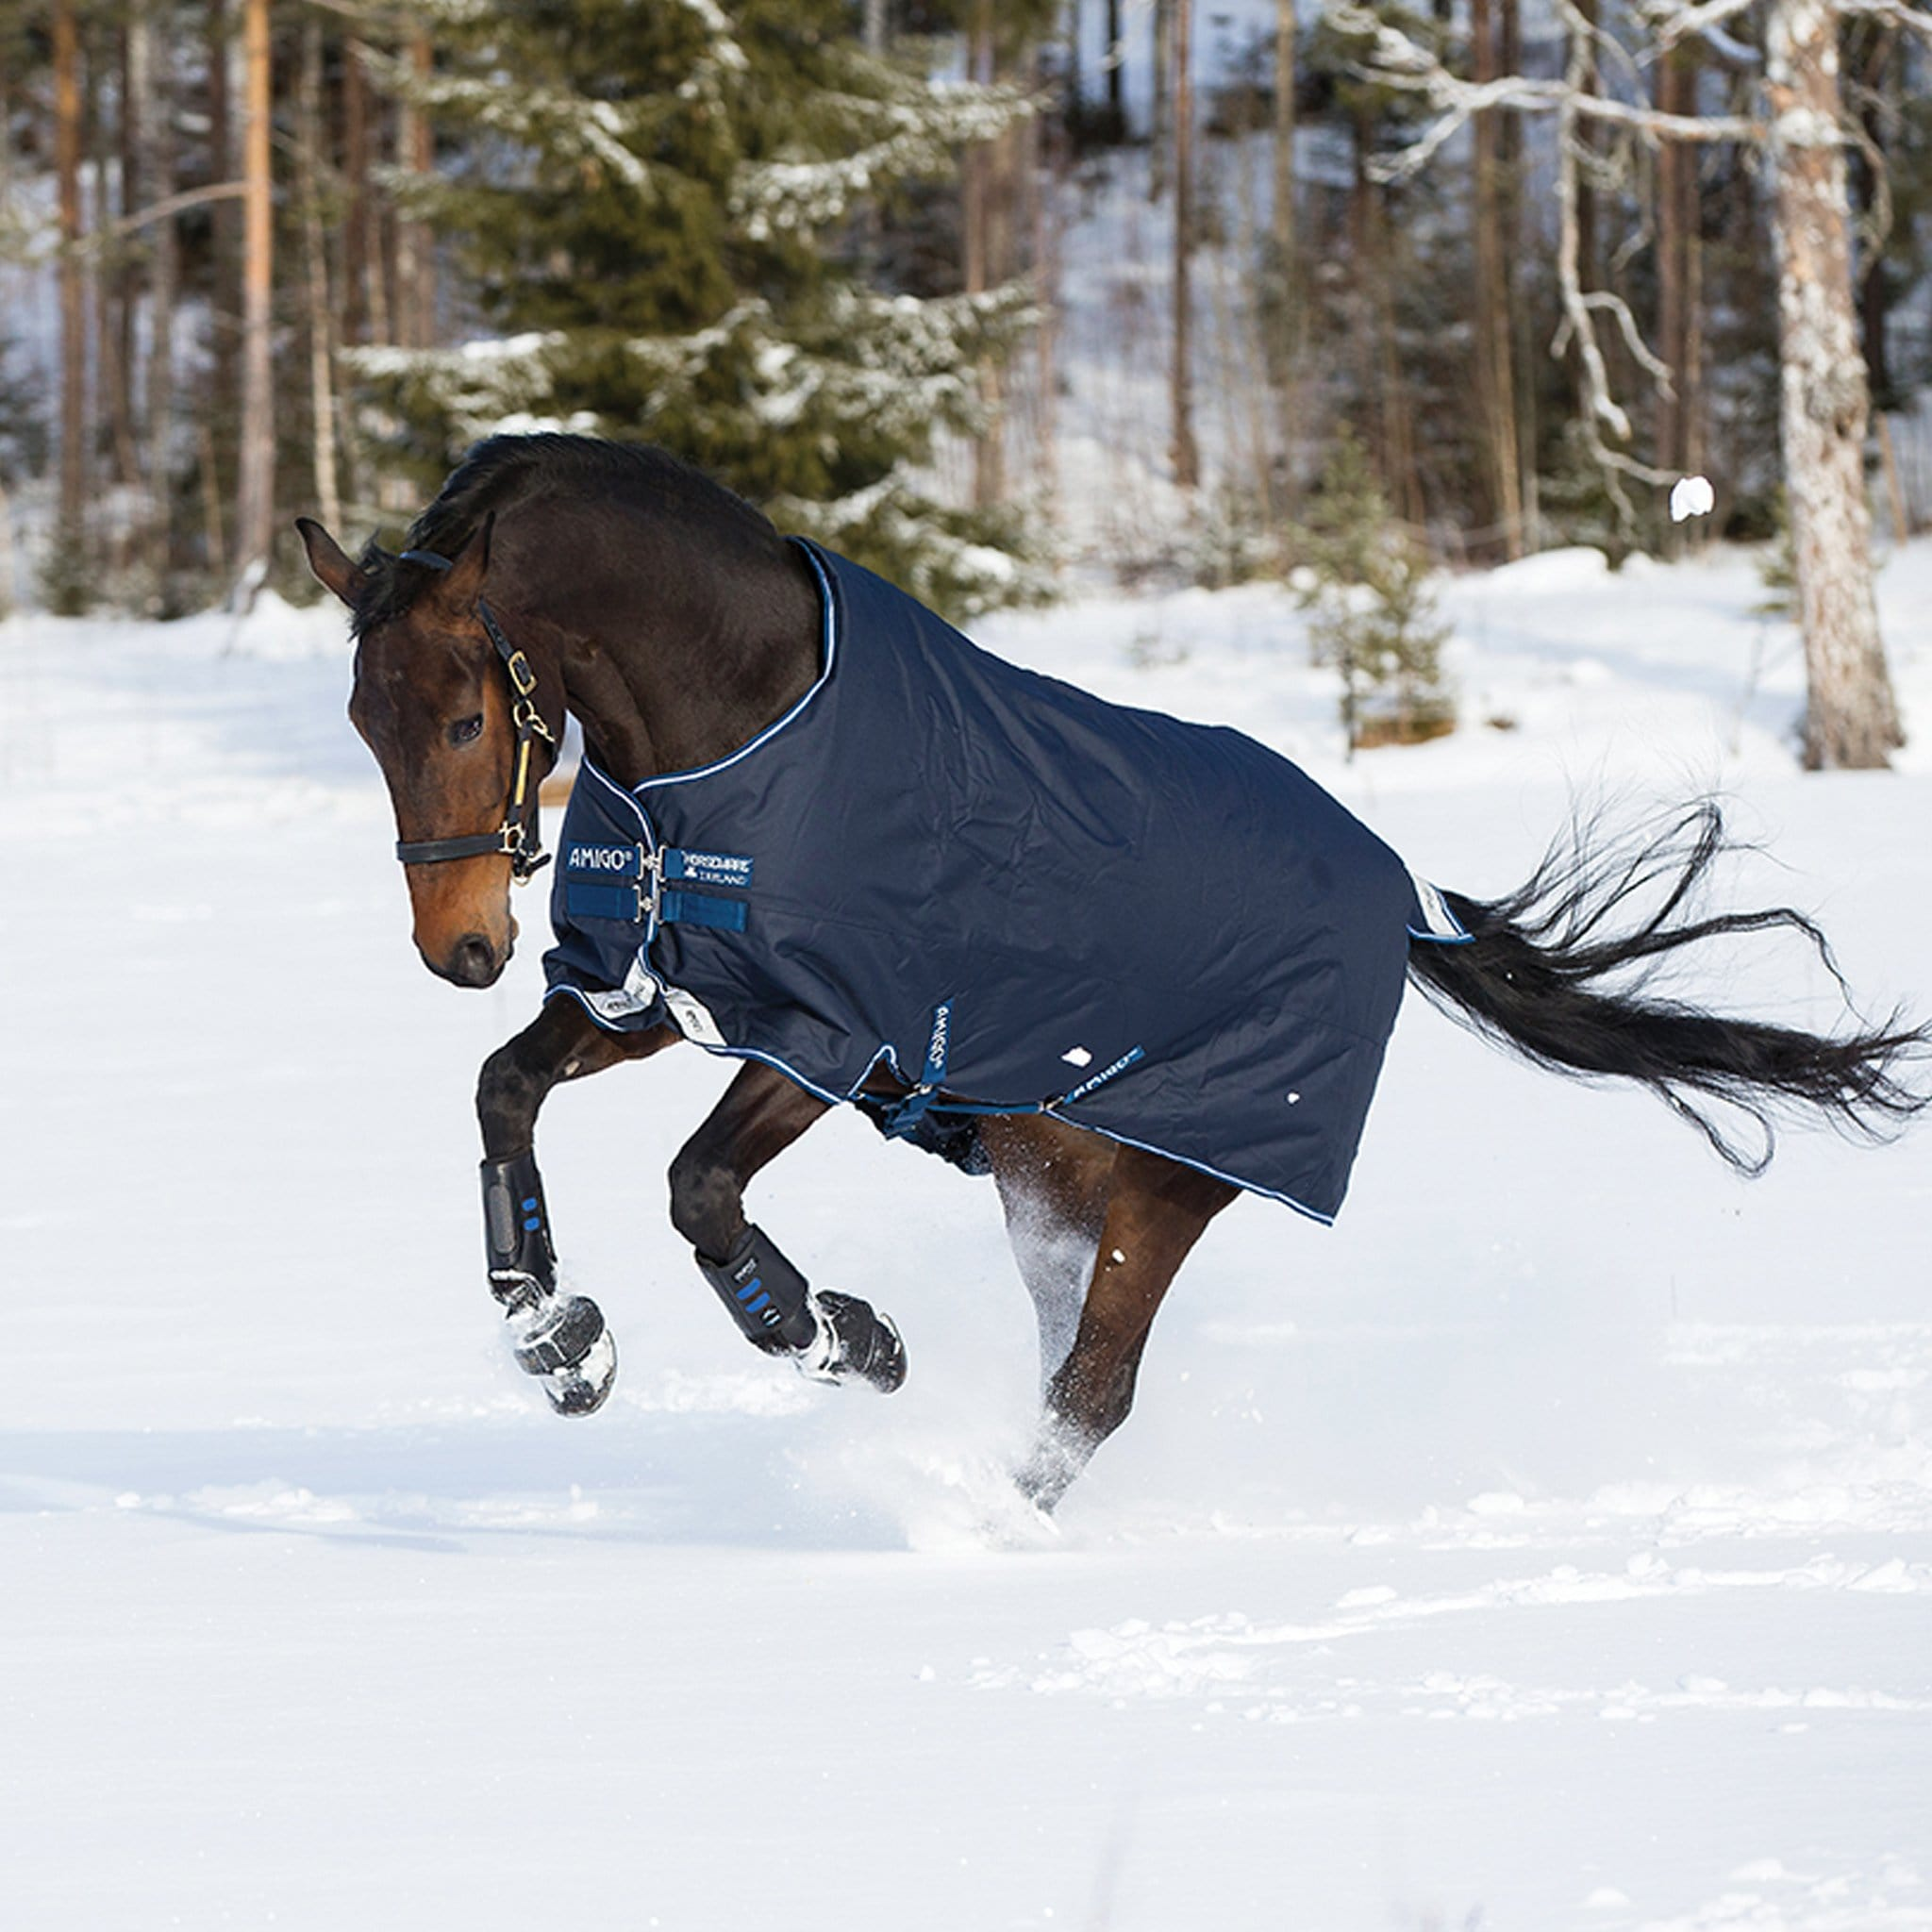 Amigo Bravo 12 Original Heavyweight 400g Standard Neck Turnout Rug in the Snow AARA43